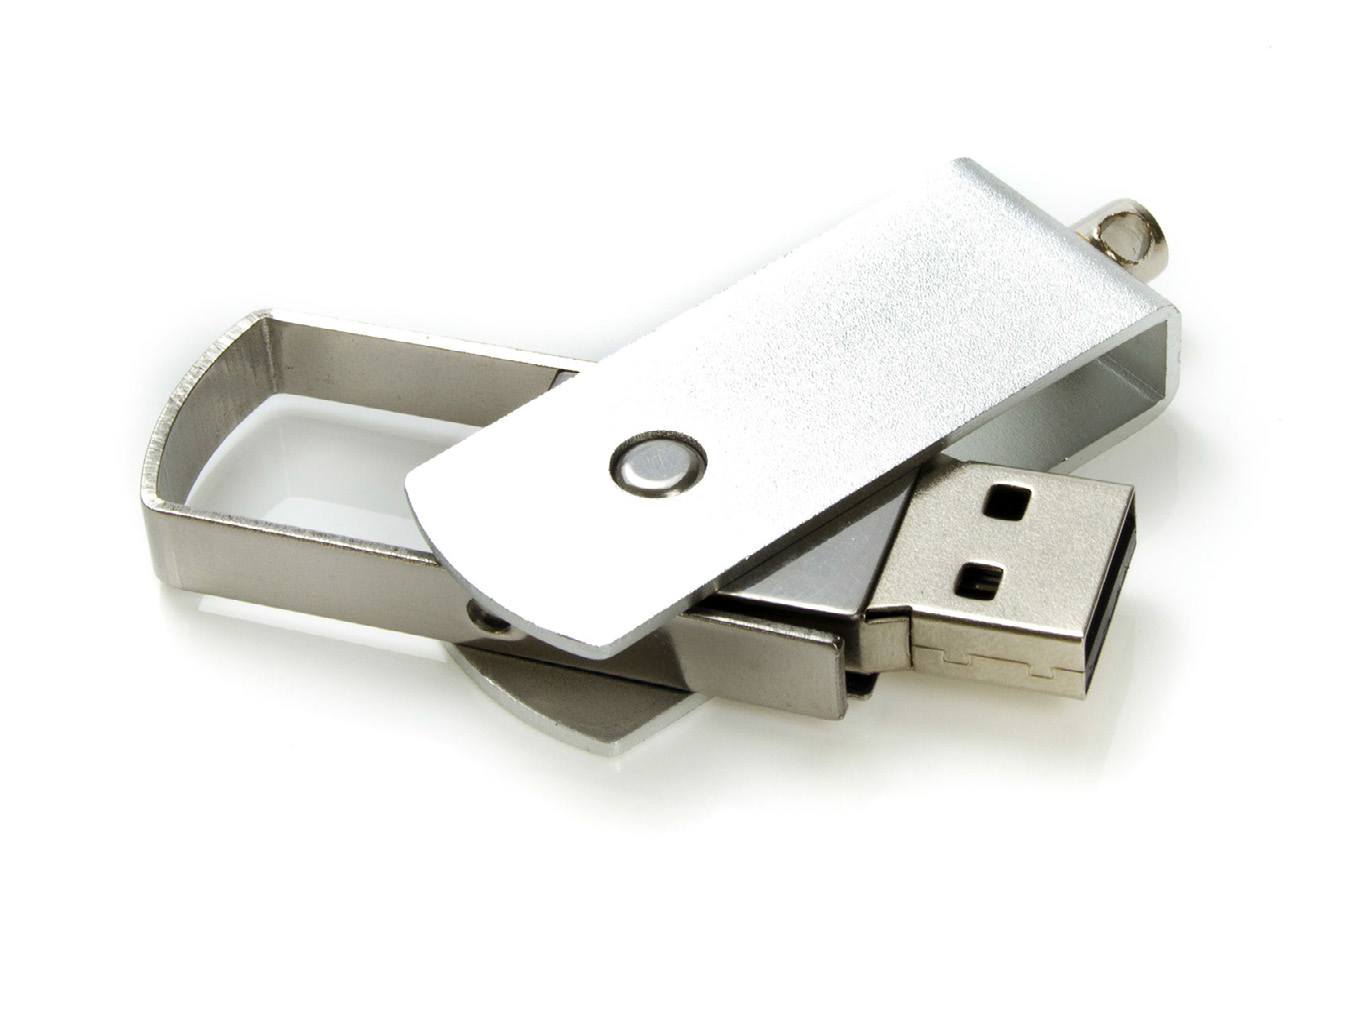 Flashdisk Metal - FDMT03